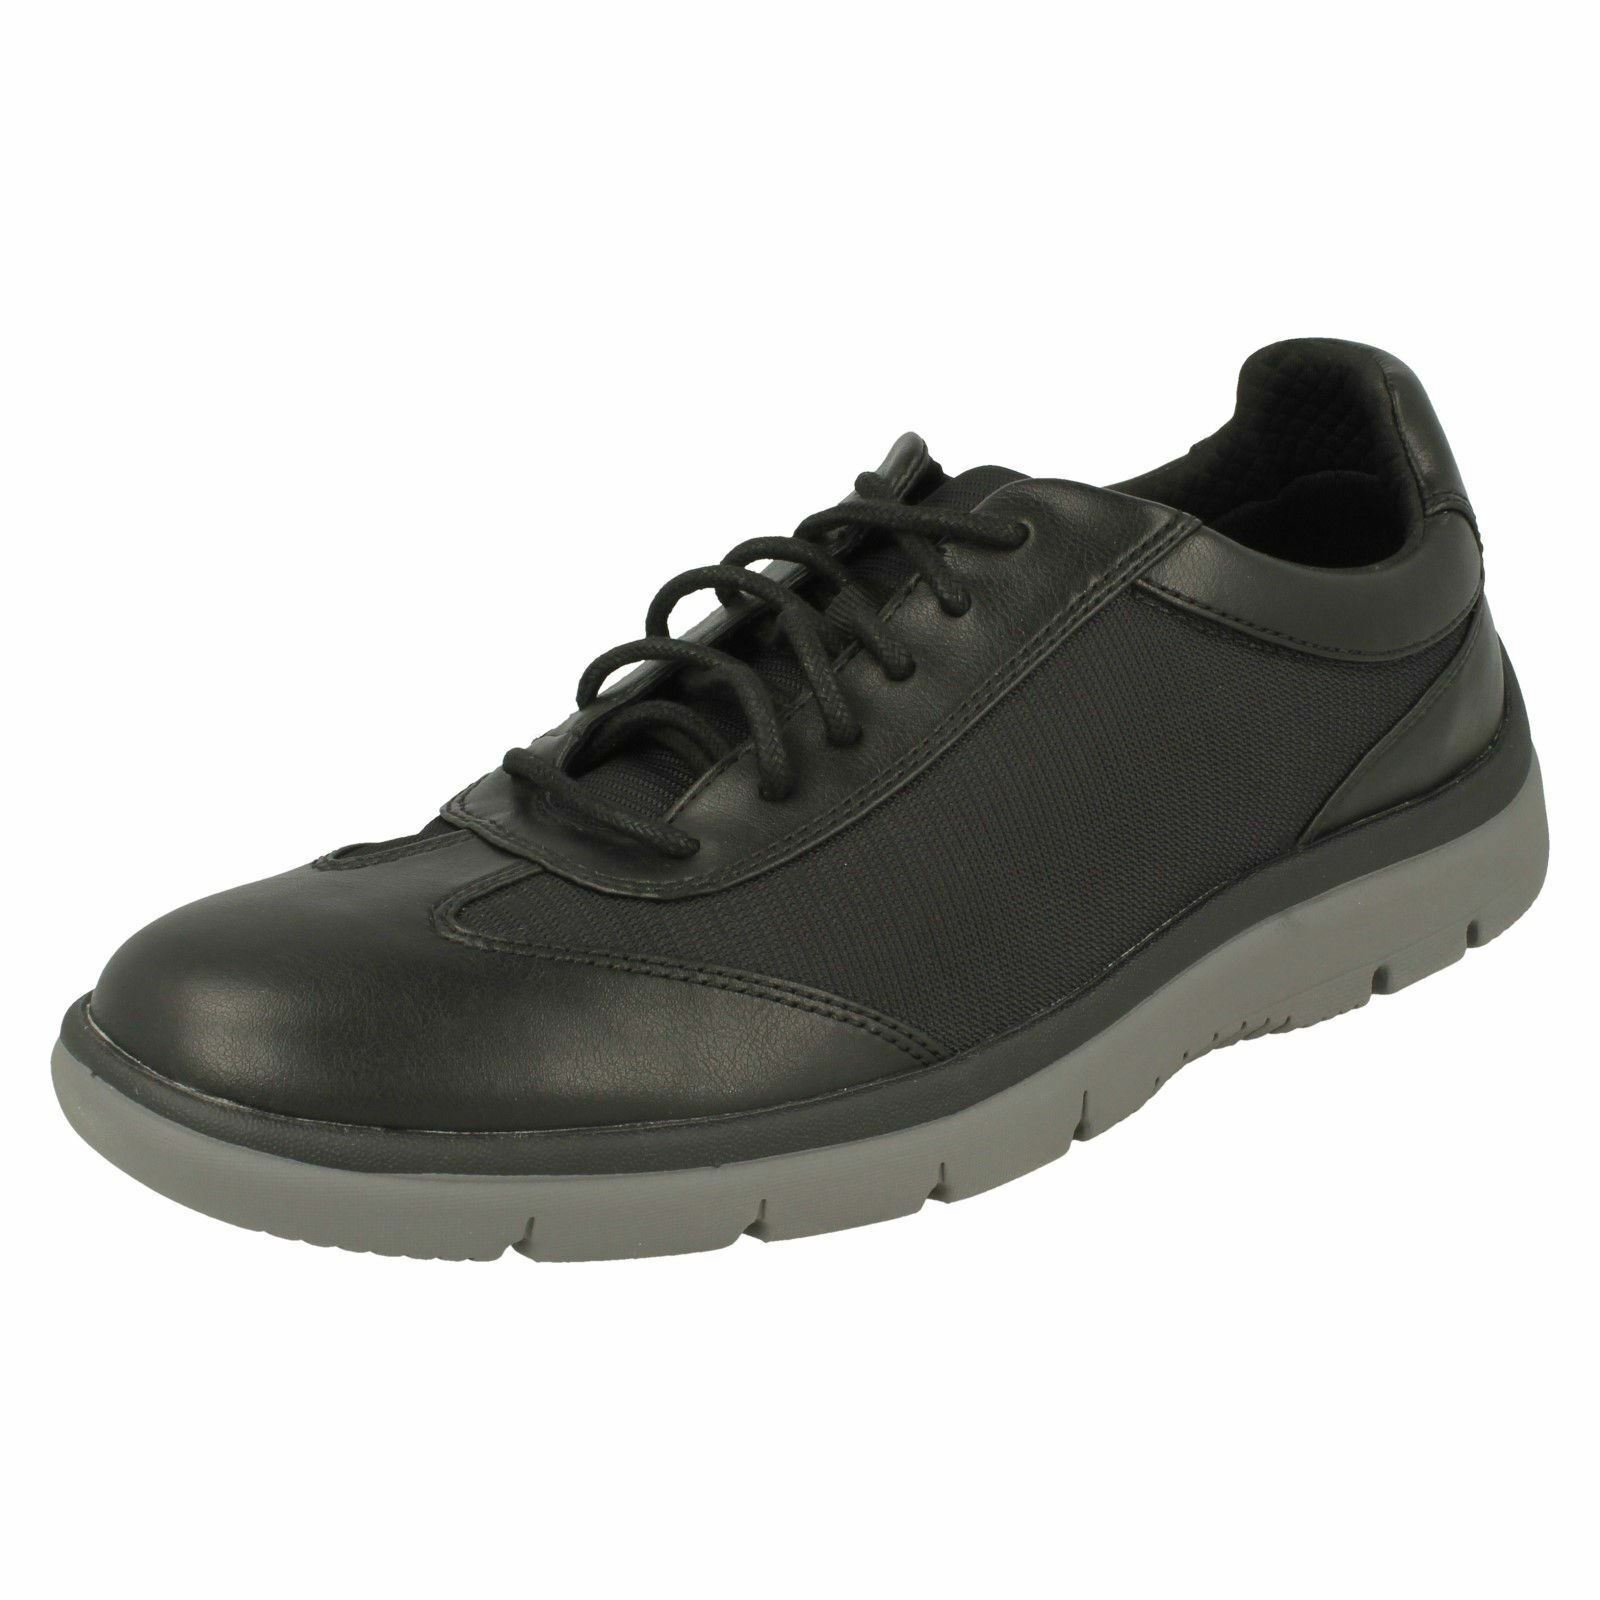 Mens Clarks Casual Lace Up Fastening Rounded Toe Trainers - 'Tunsil Ridge'